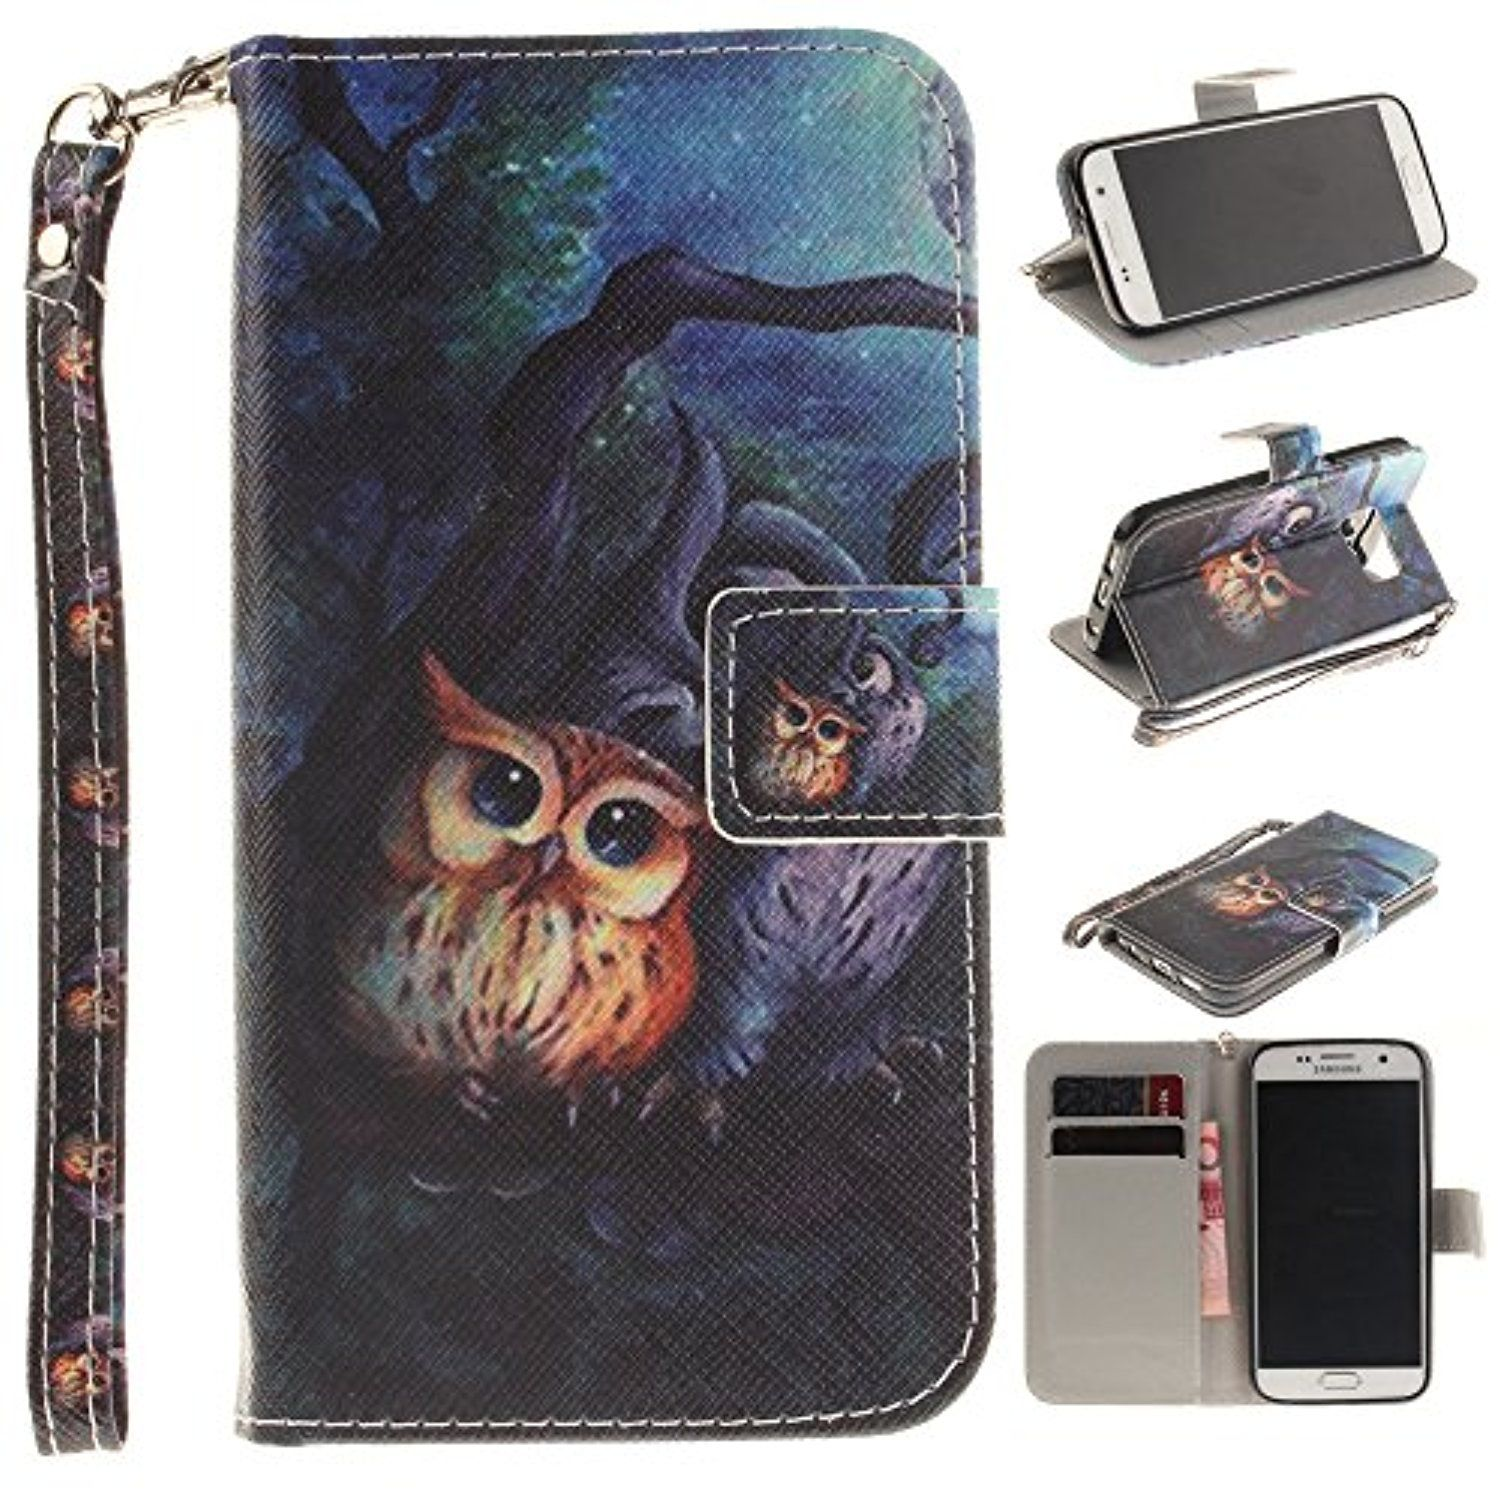 Galaxy S7 Case,IVY [Owl][Wrist Strap Design][Kickstand Case][PU Leather Wallet] For Samsung Galaxy S7 Phone -- Awesome products selected by Anna Churchill